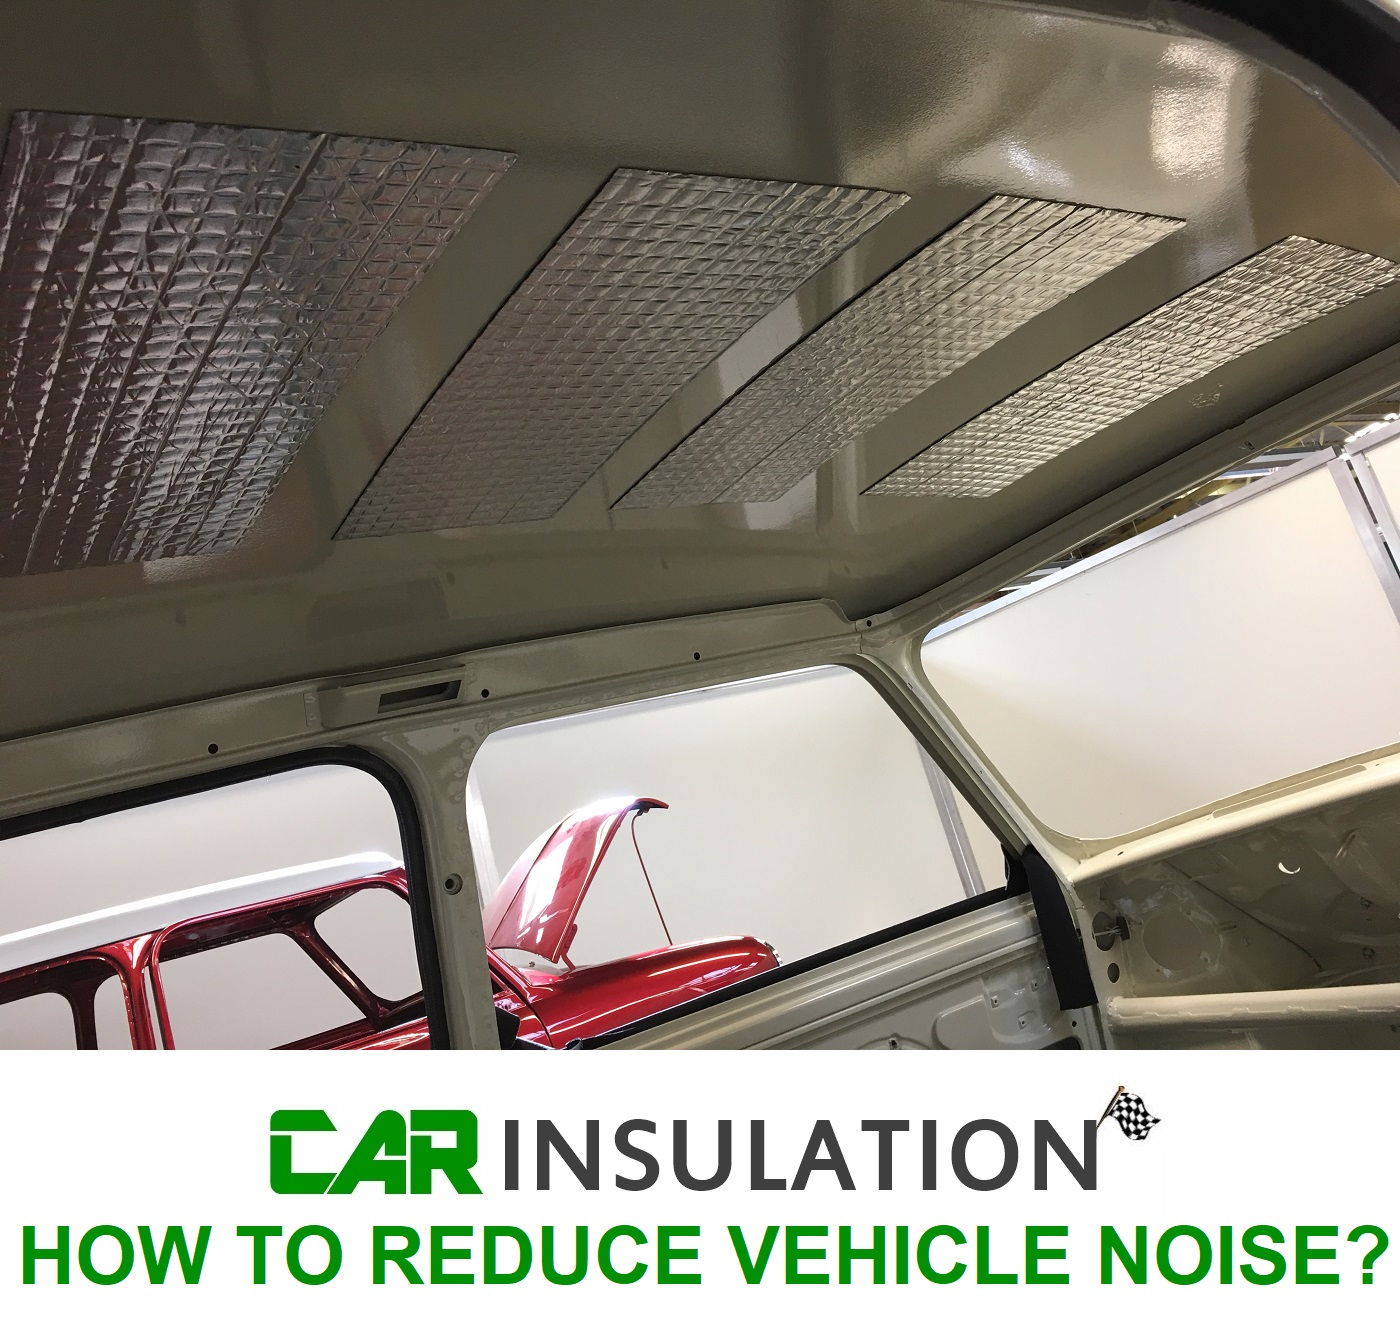 HOW TO REDUCE VEHICLE NOISE